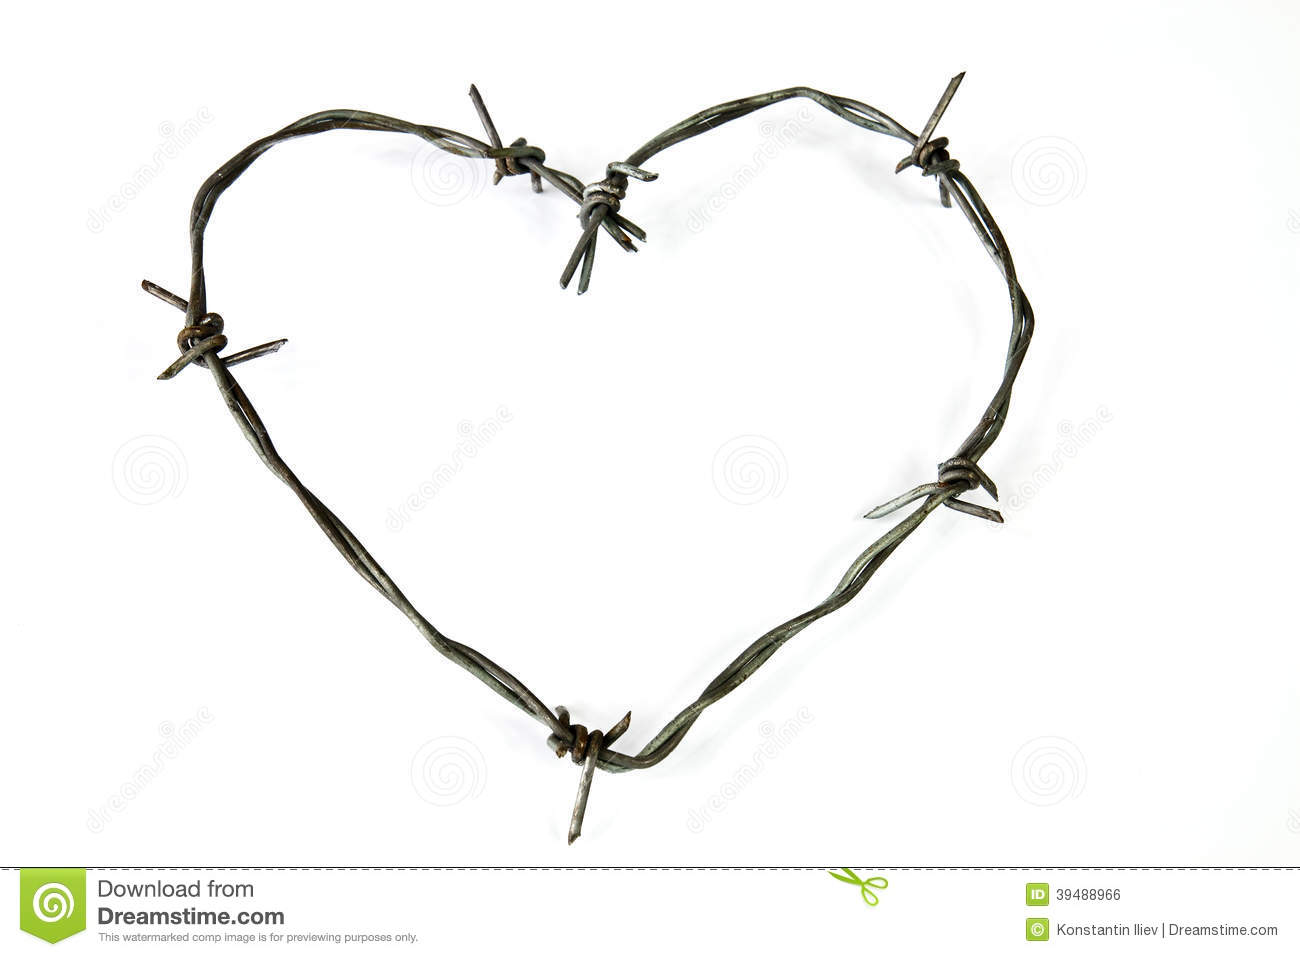 Amazing How To Draw A Bleeding Heart With Barbed Wire Step By Step ...